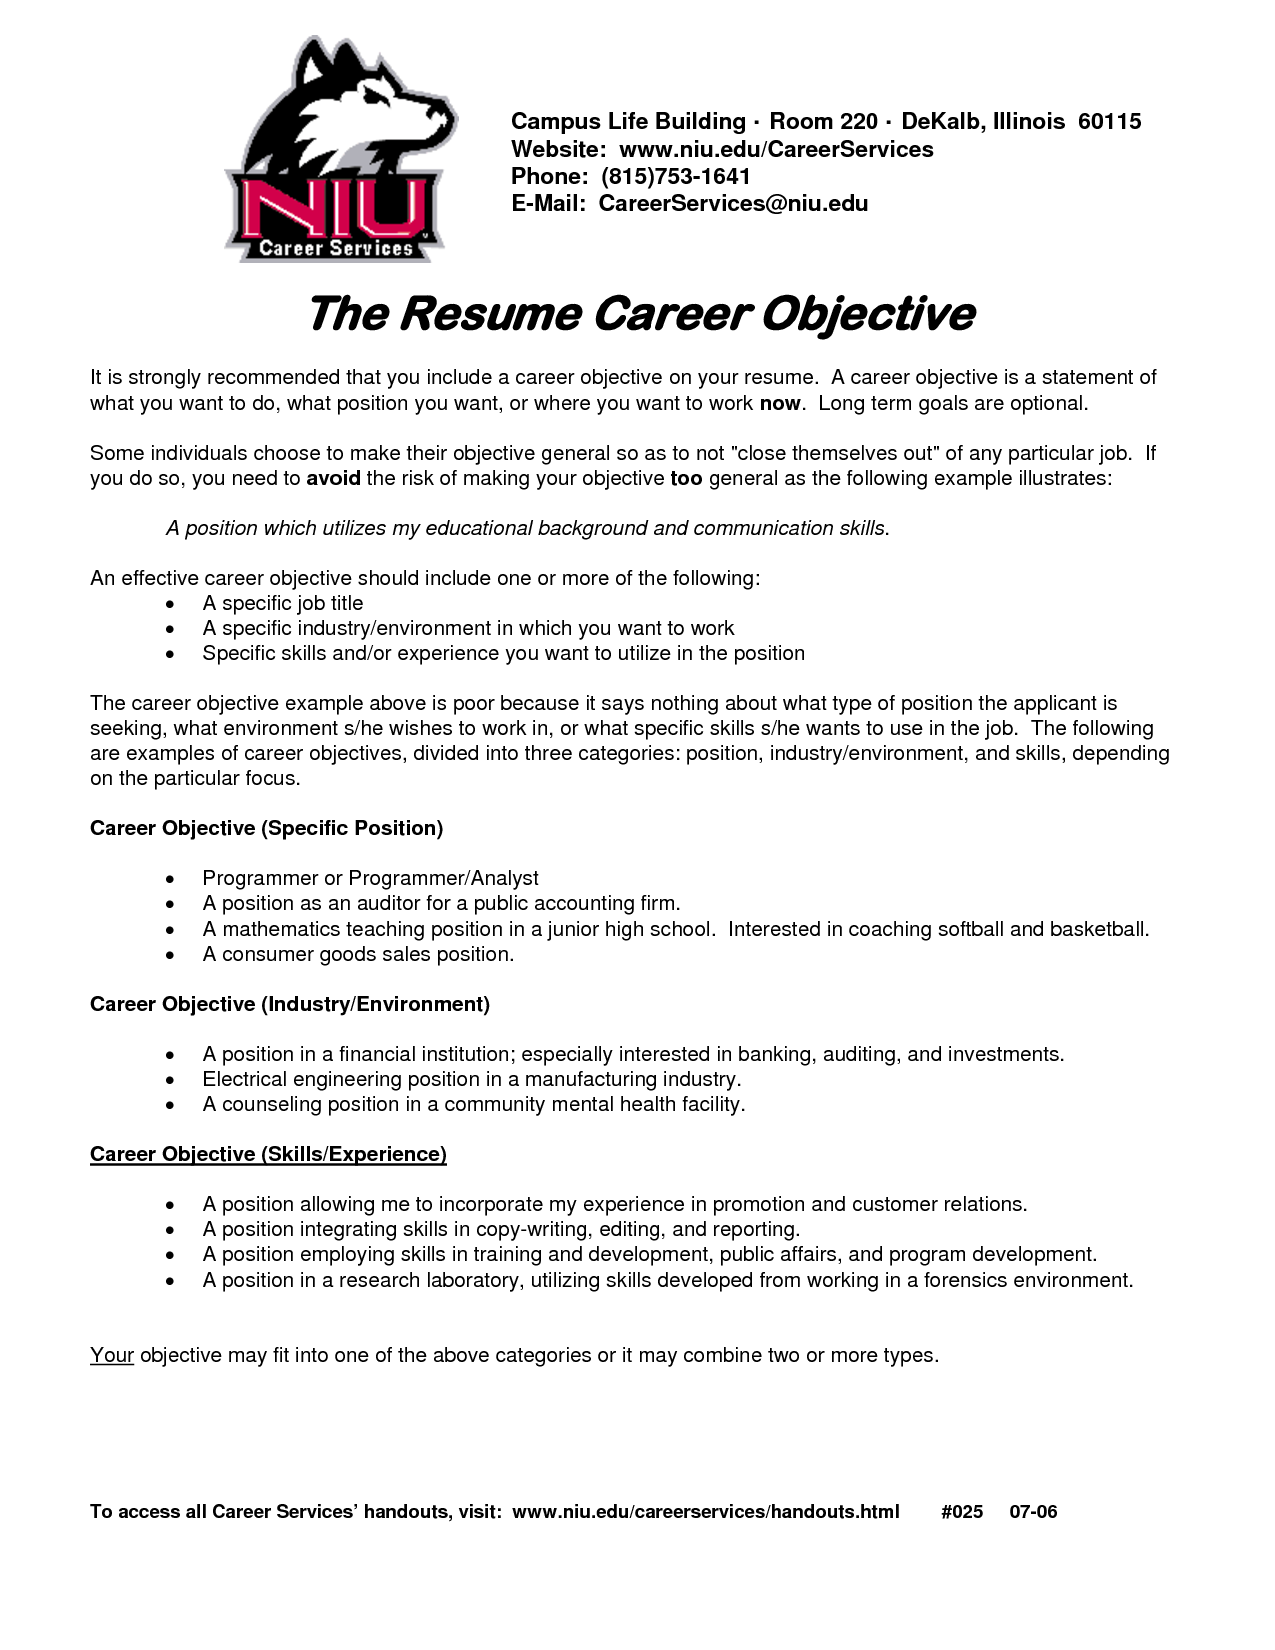 Pin by Trisan Boudreau on Resume Resume objective